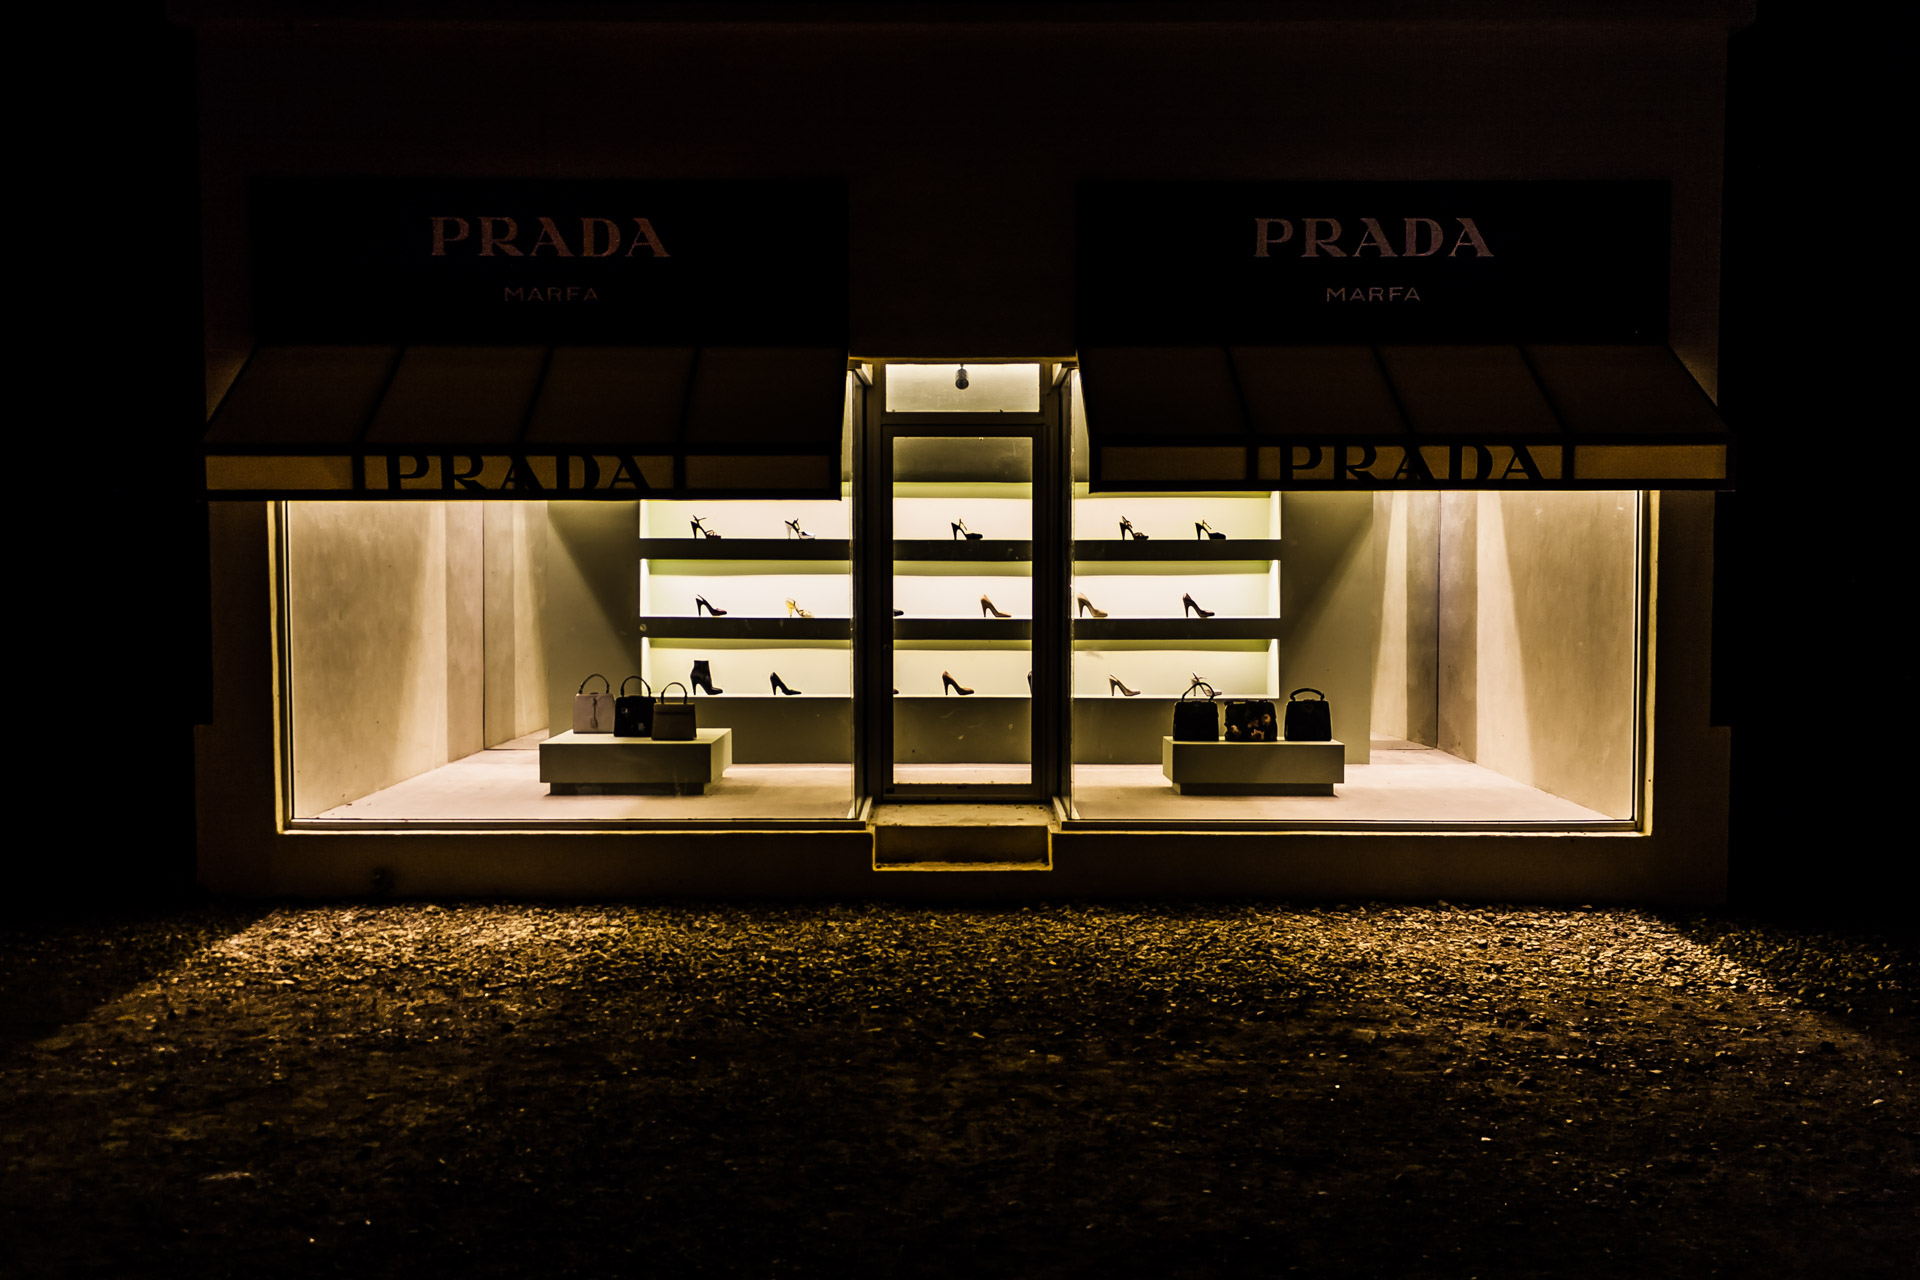 Prada Marfa (front close)